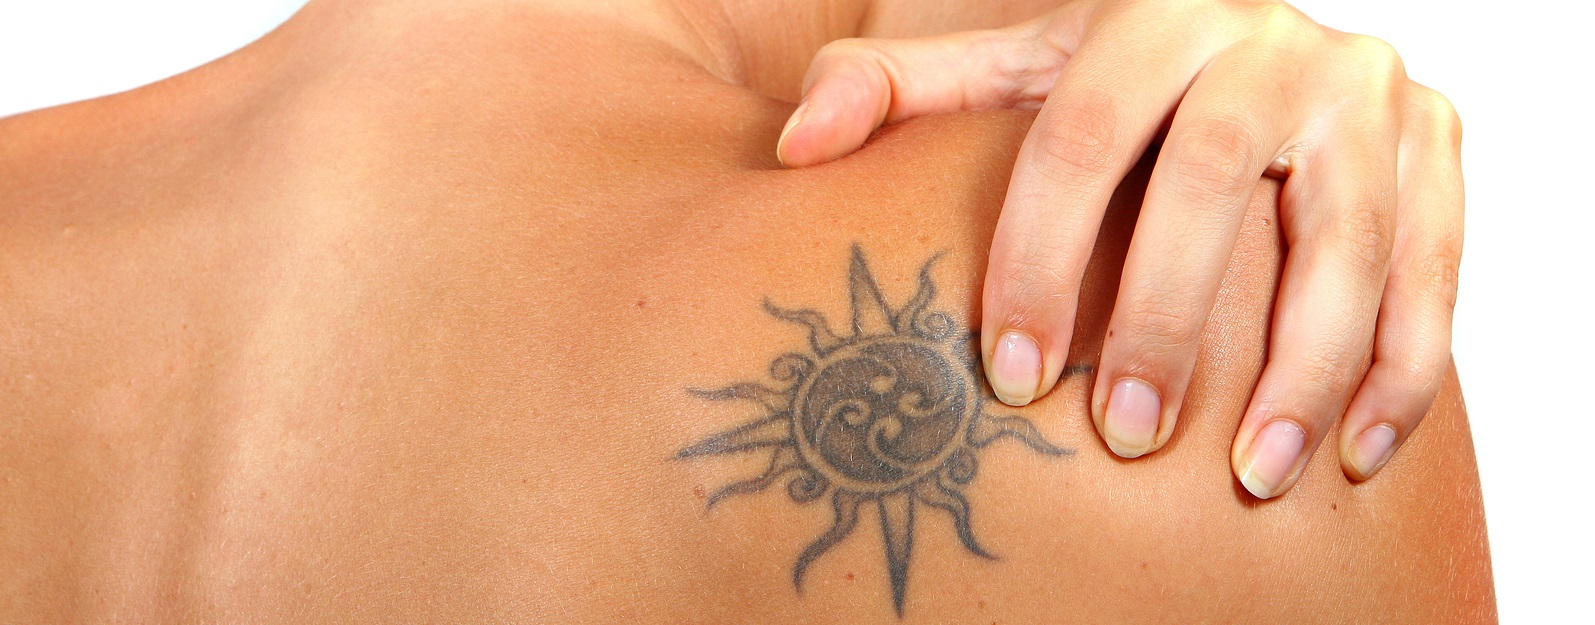 Laser Tattoo Removal Fresno   First Health Medical